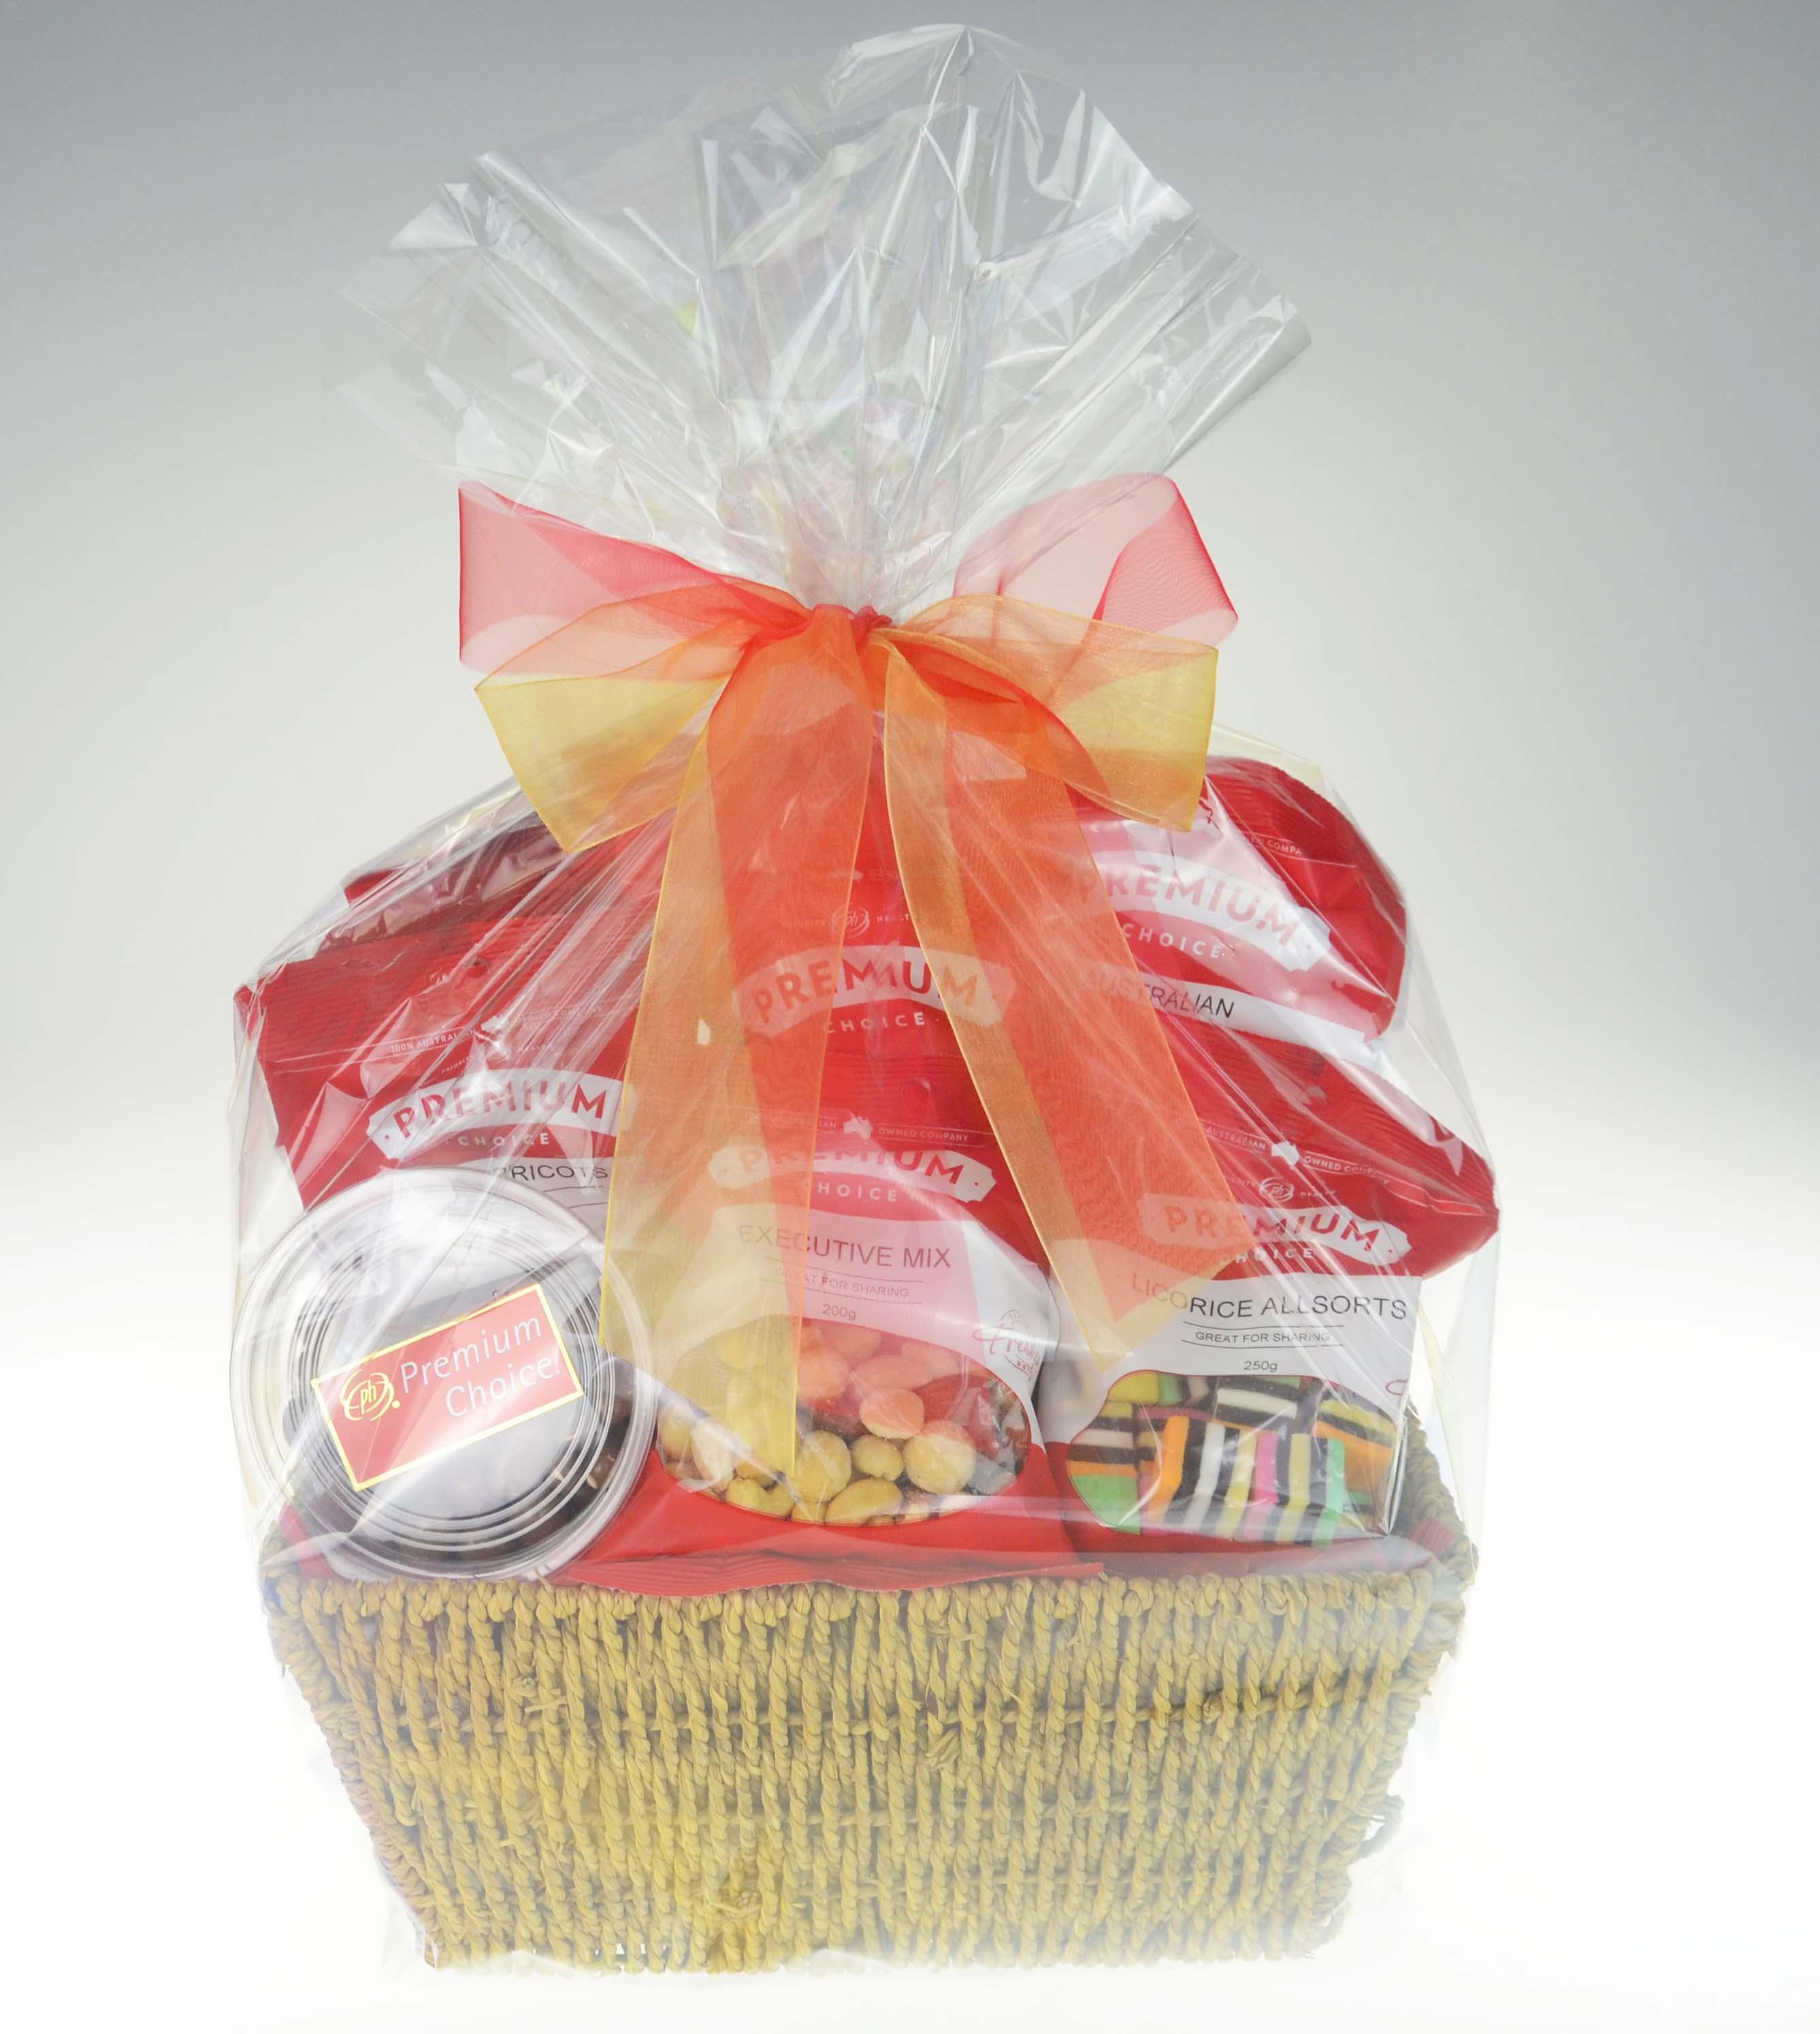 The Naughty and Nice Festive Hamper